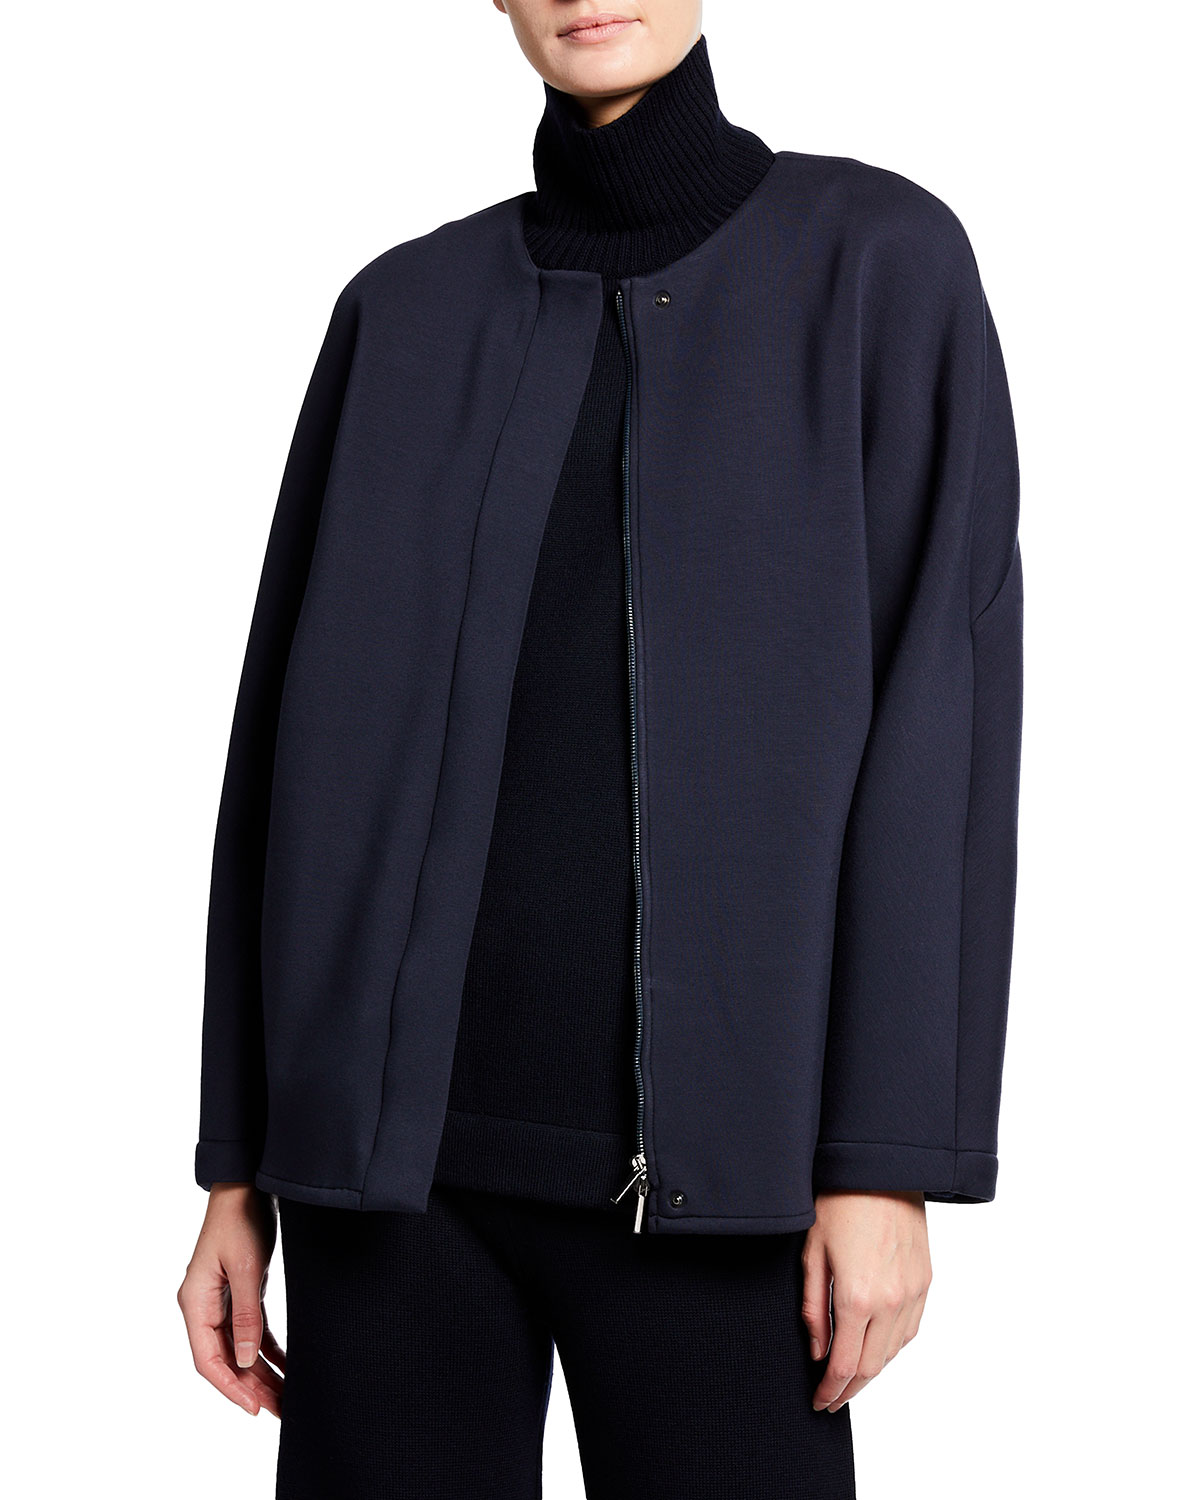 Max Mara Leisure Giorno Zip-Front Jacket